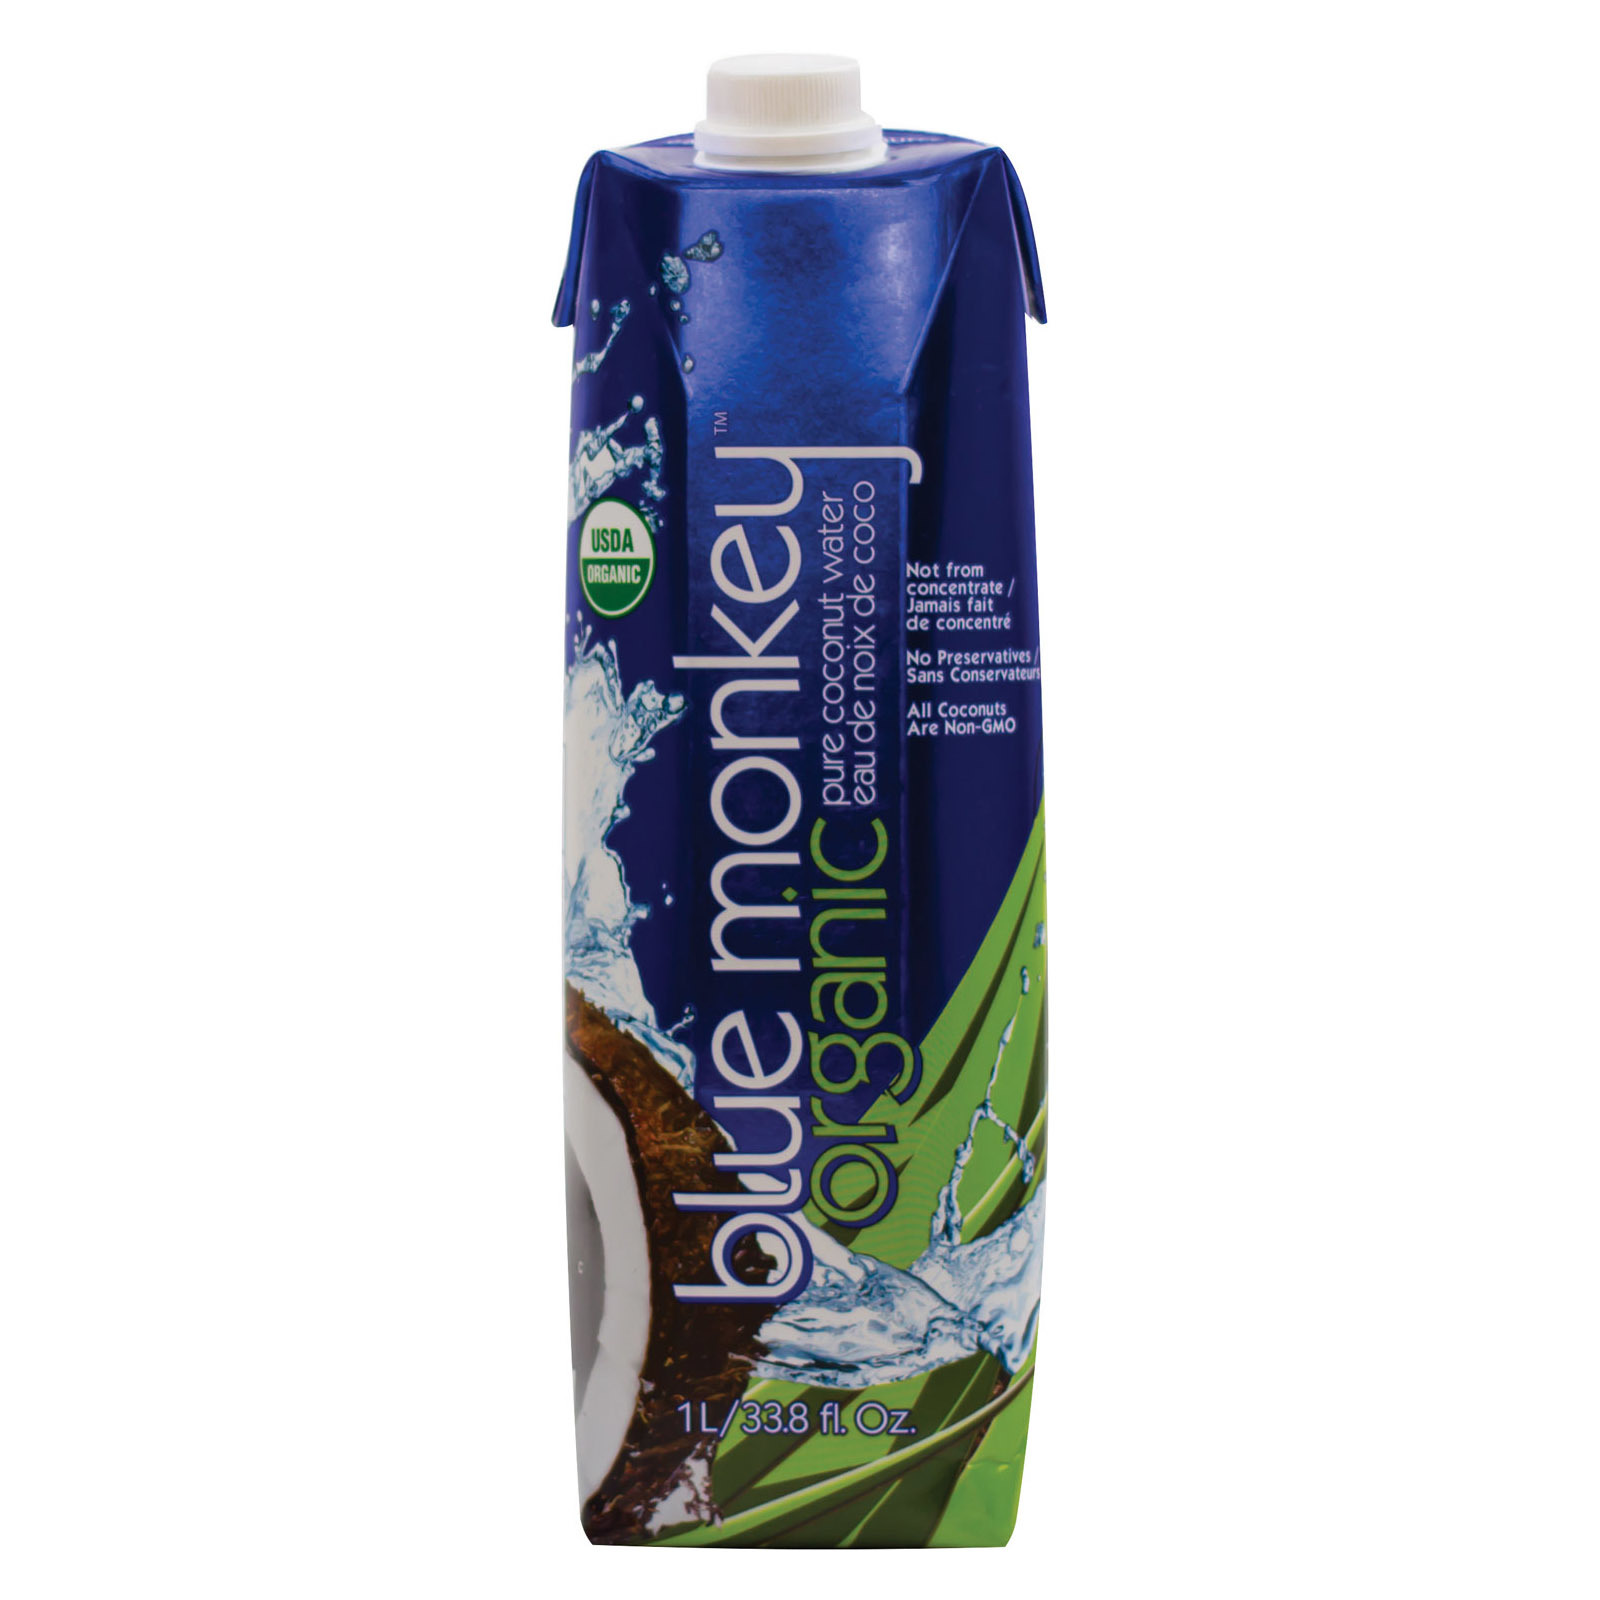 Blue Monkey Coconut Collection Water - Coconut - Case of 12 - 33.8 Fl oz.